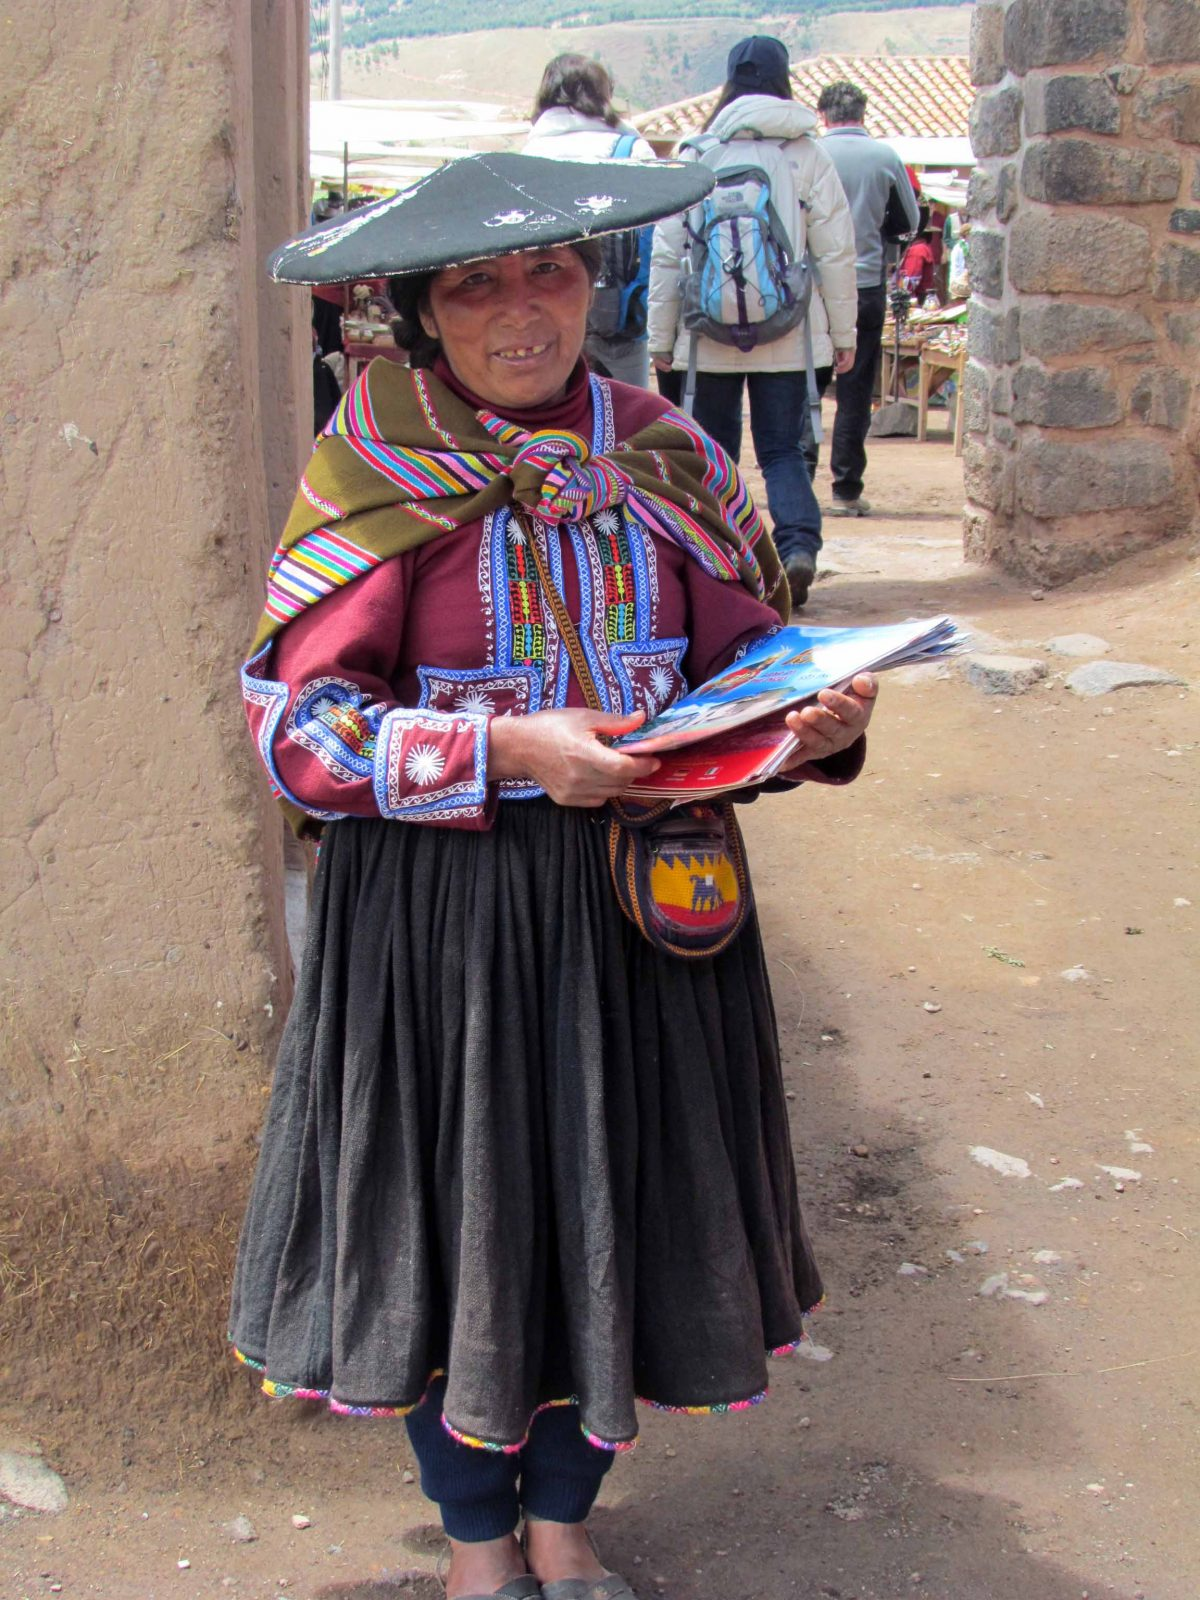 A local woman handing out tourist guides, Peru | ©Angela Drake